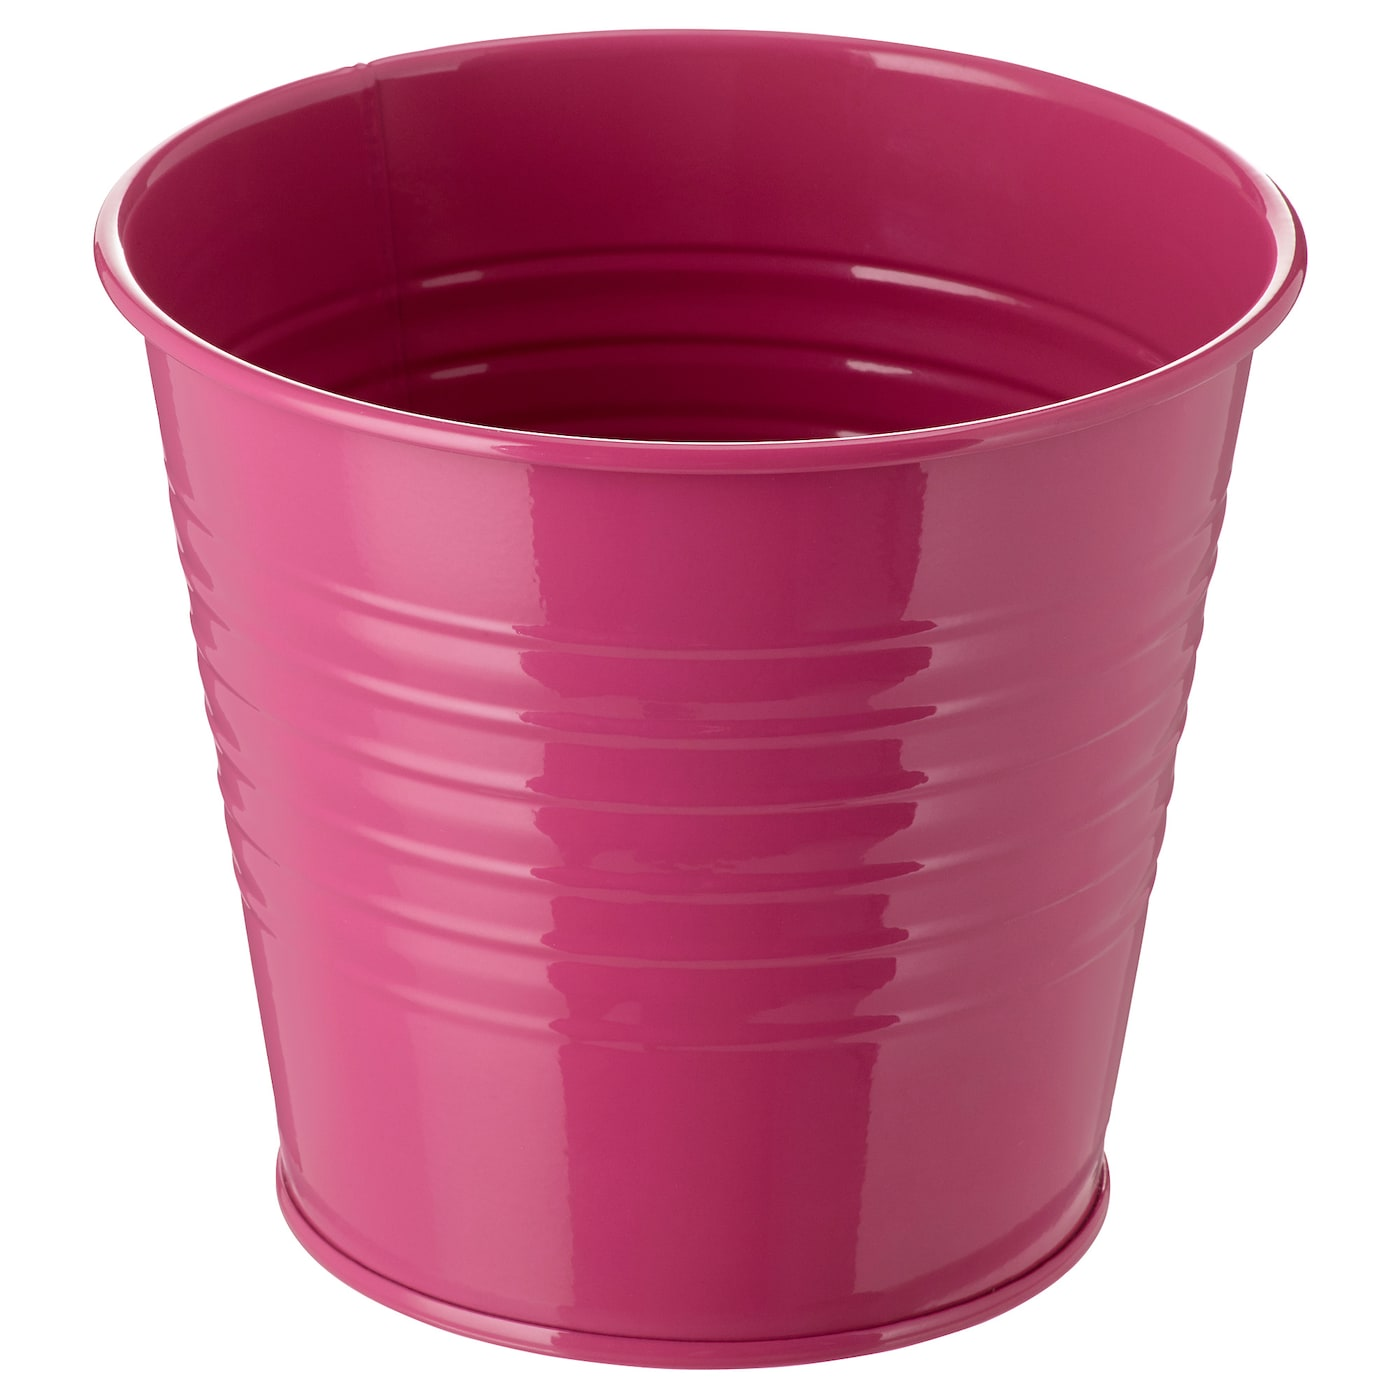 Socker cache pot int rieur ext rieur rose 12 cm ikea for Cache pot exterieur